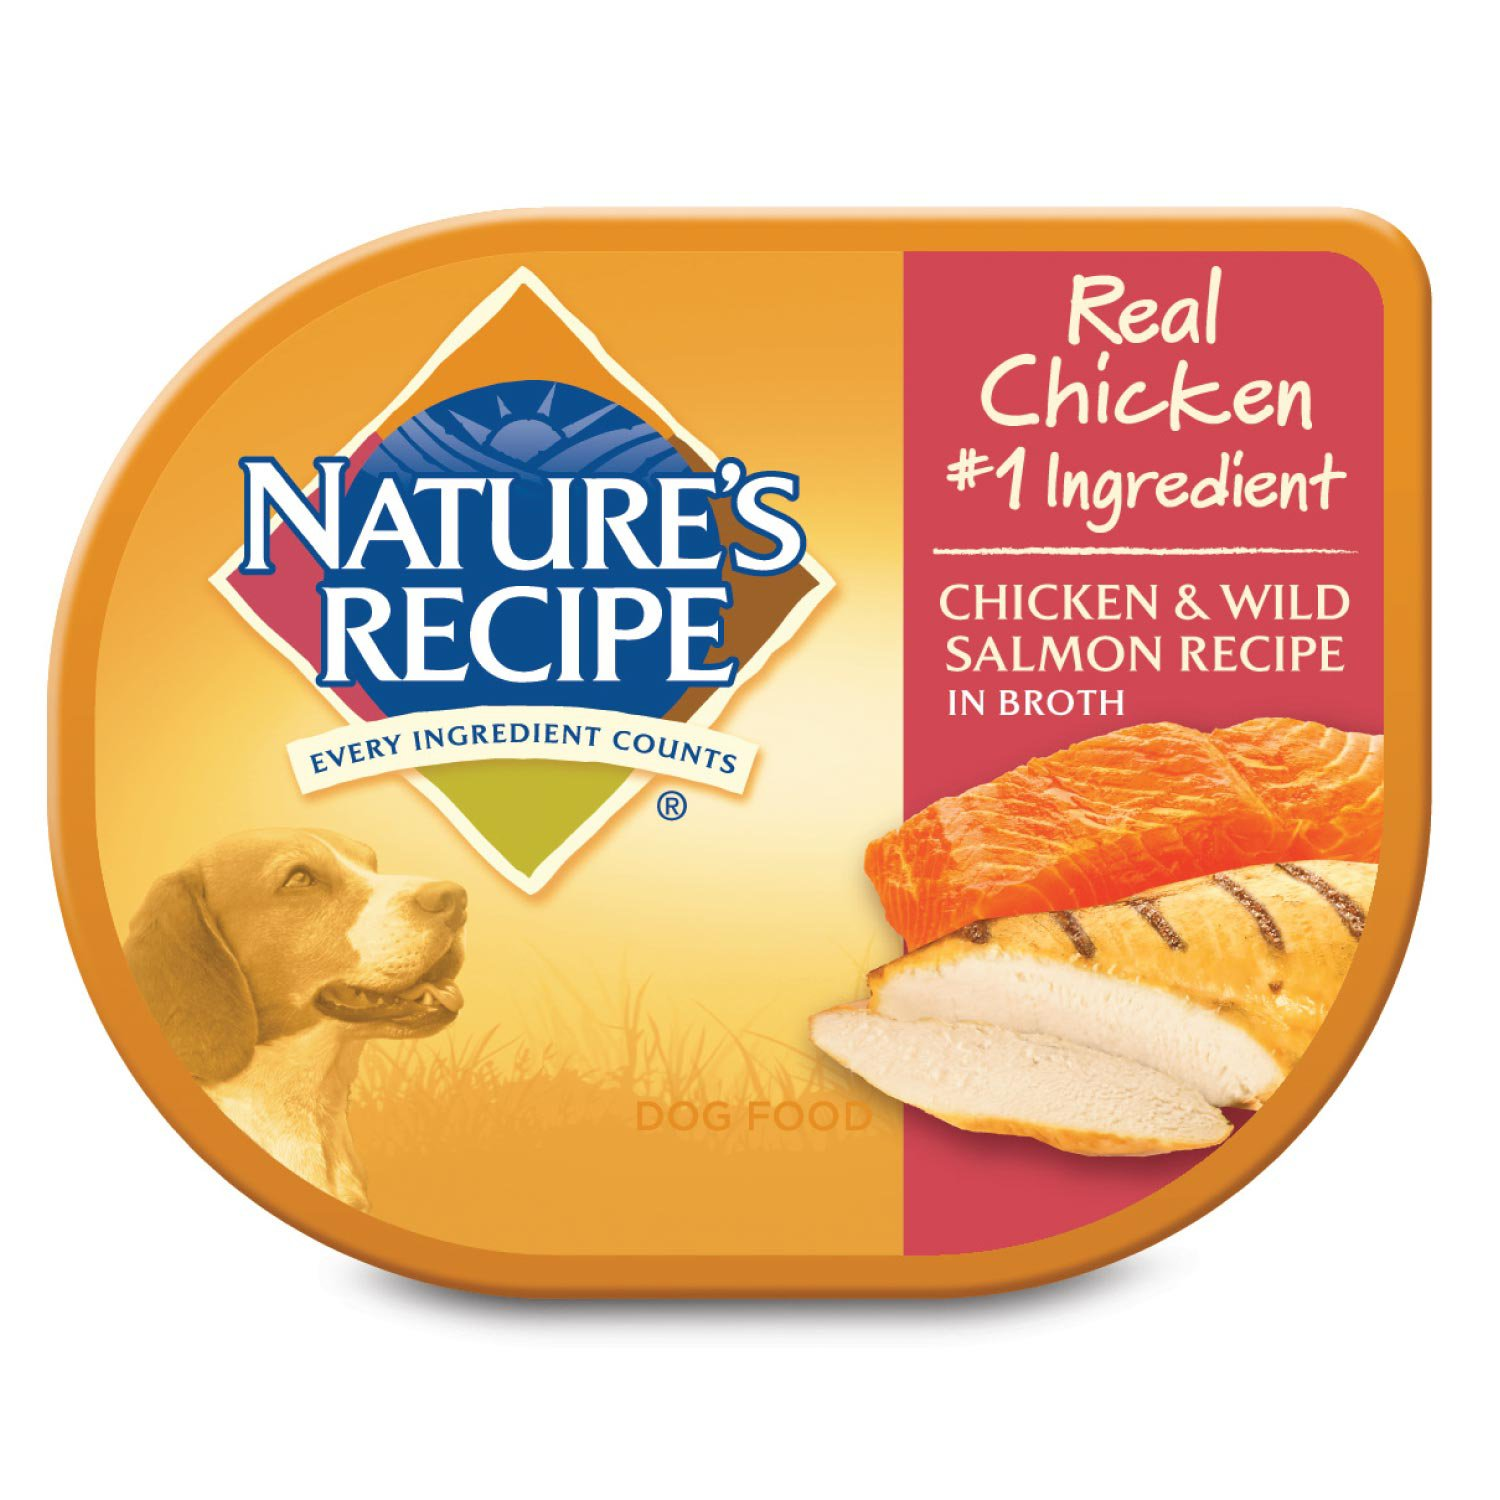 Nature's Recipe Adult Dog Food Trays, Chicken & Salmon